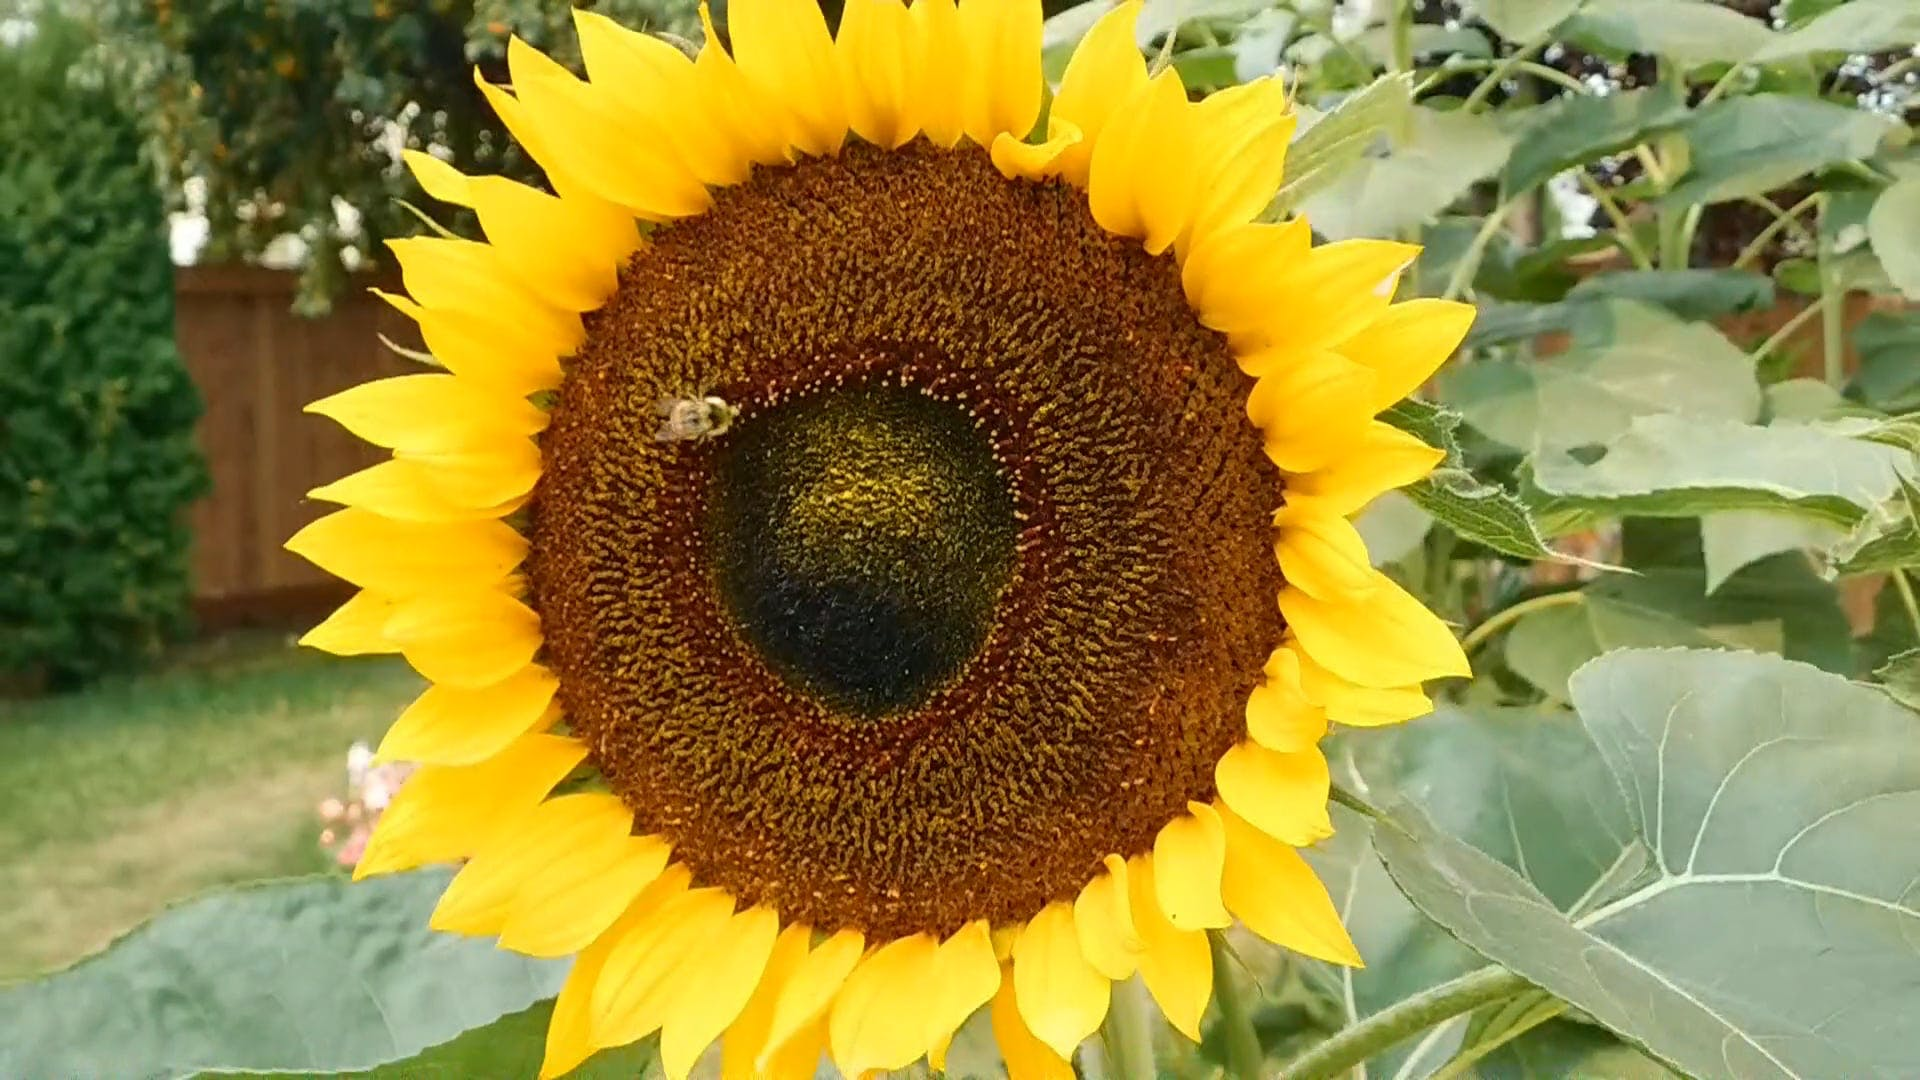 Bee At Work On The Sunflower